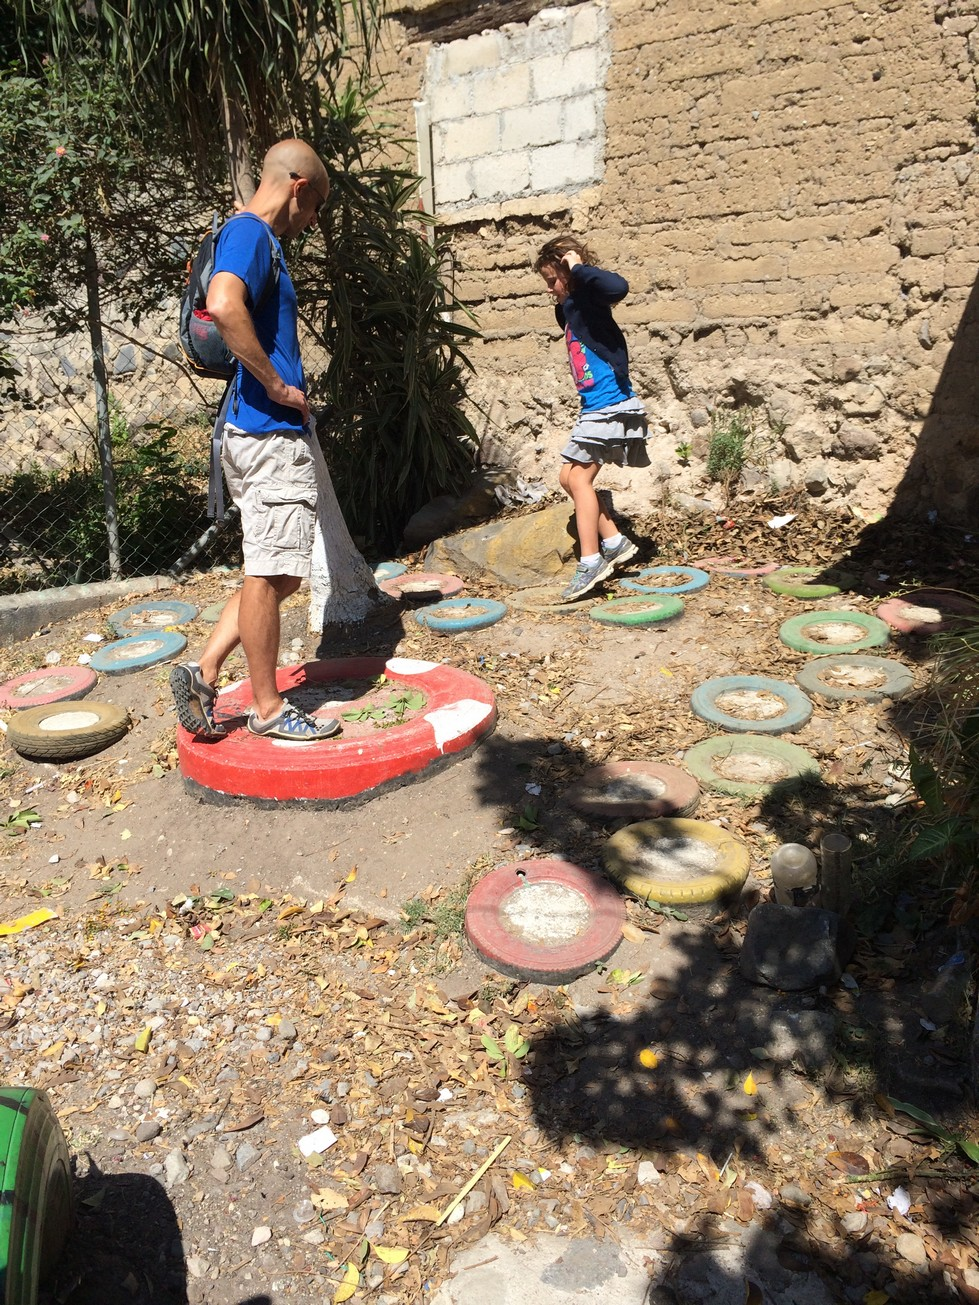 Used tires, painted, filled with cement and buried makes for some creative games in a park